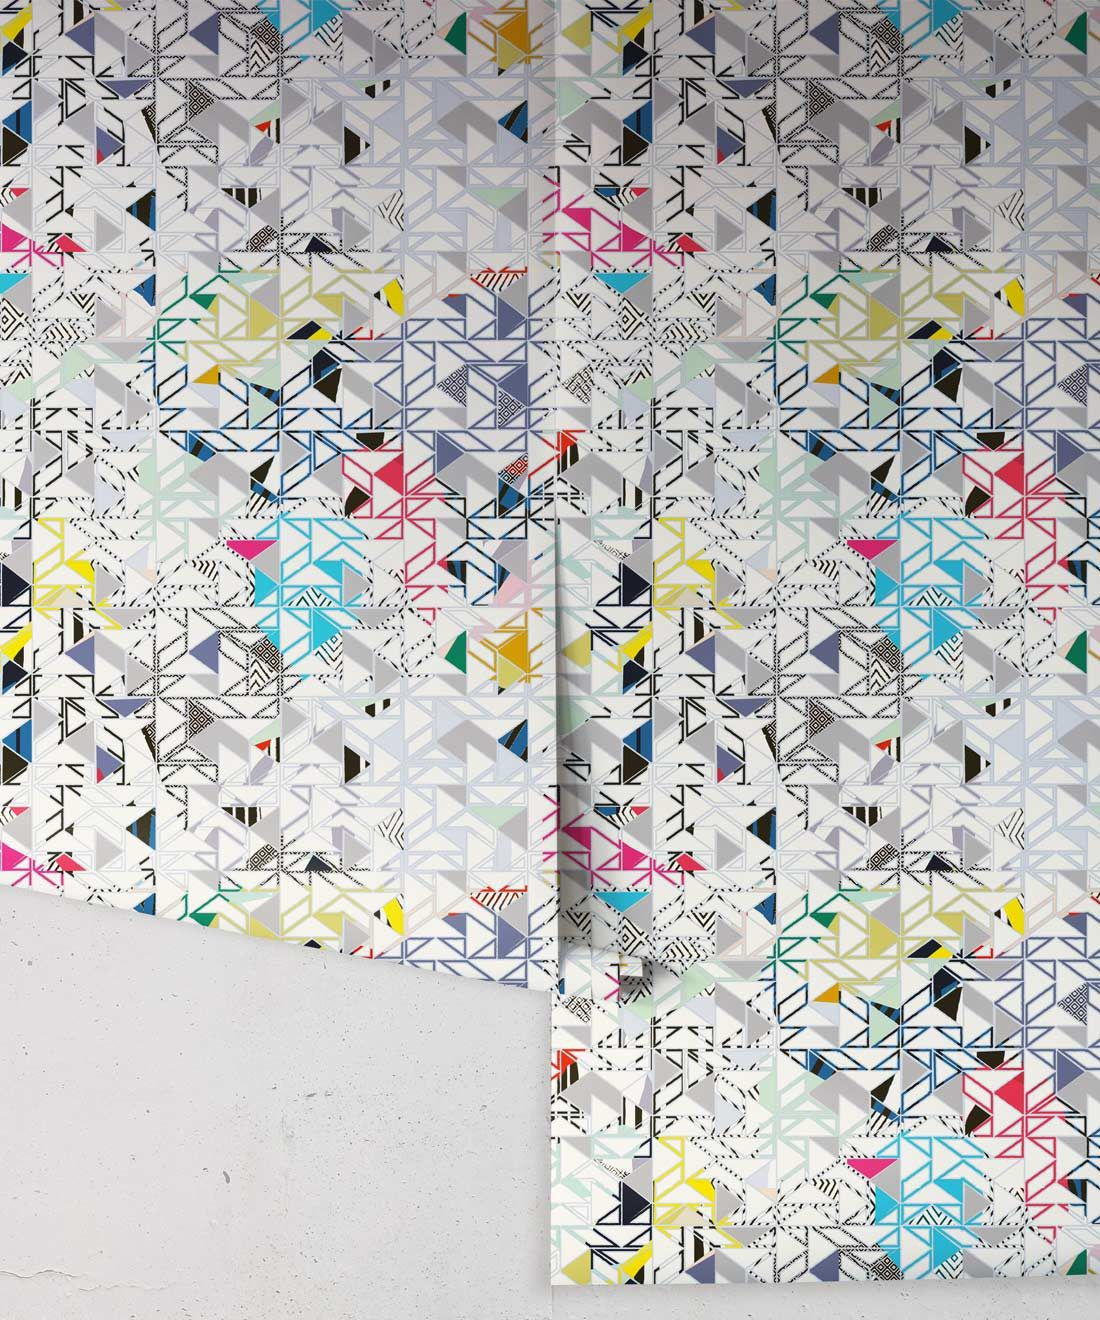 Bauhaus Wallpaper, Colourful Geometric Wallpaper by Kitty McCall